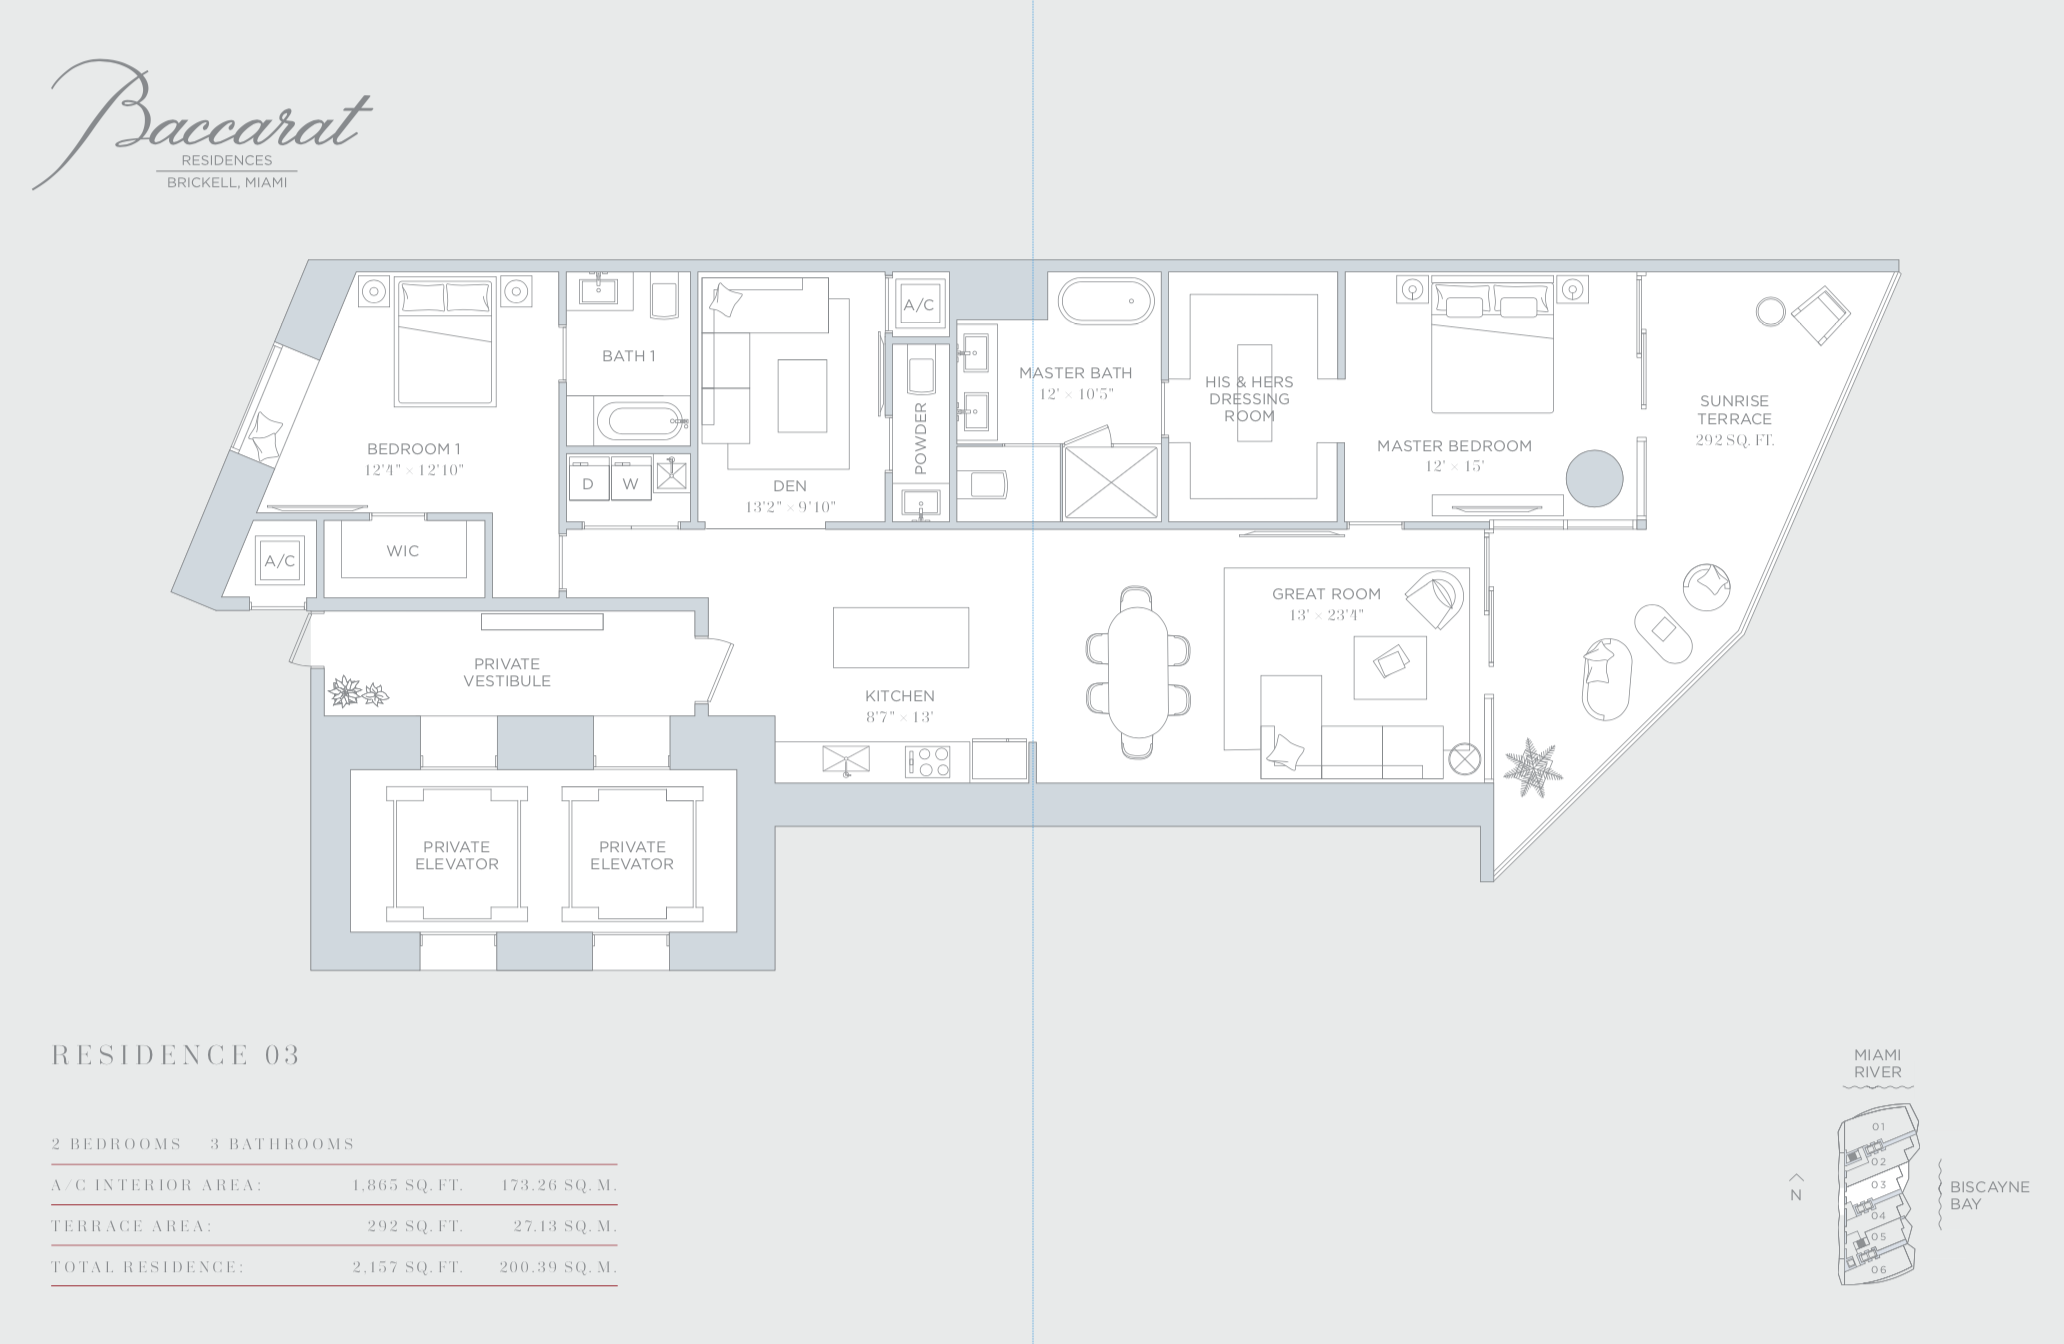 Baccarat | Residence 03 | 2 Bedrooms| 1,865 SF